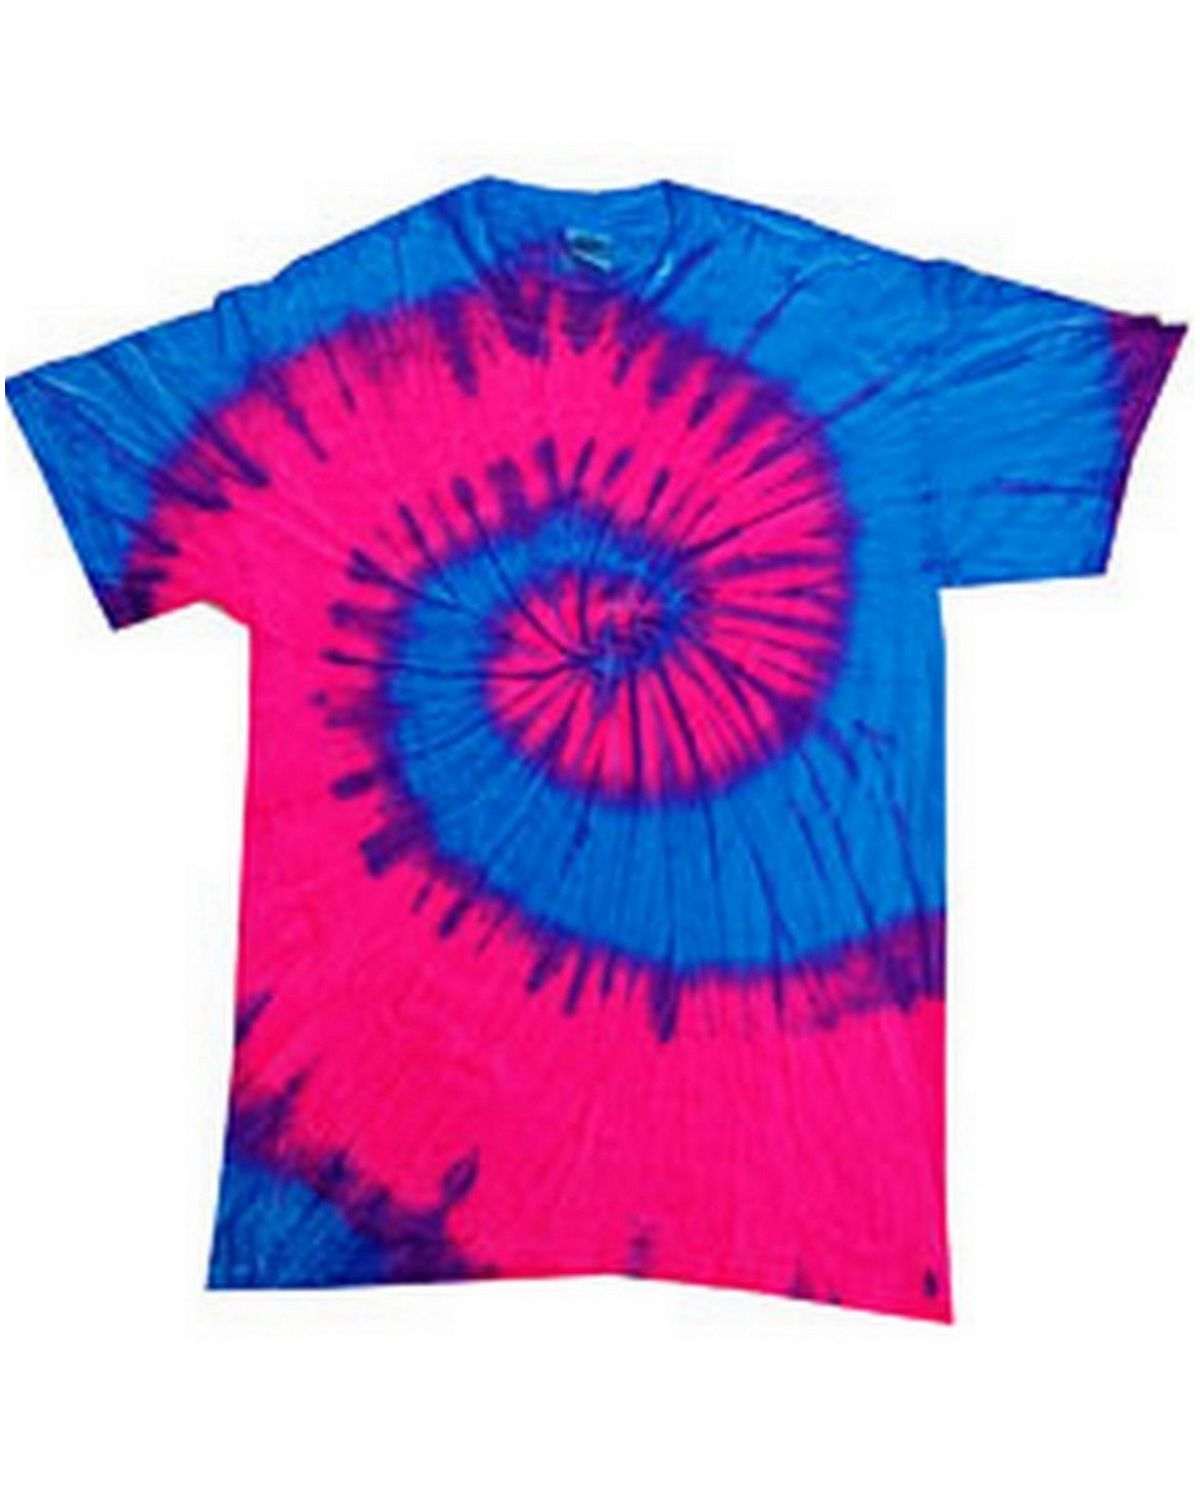 Tie-Dye CD100 100% Cotton Tie-Dyed T-Shirt - ApparelnBags.com